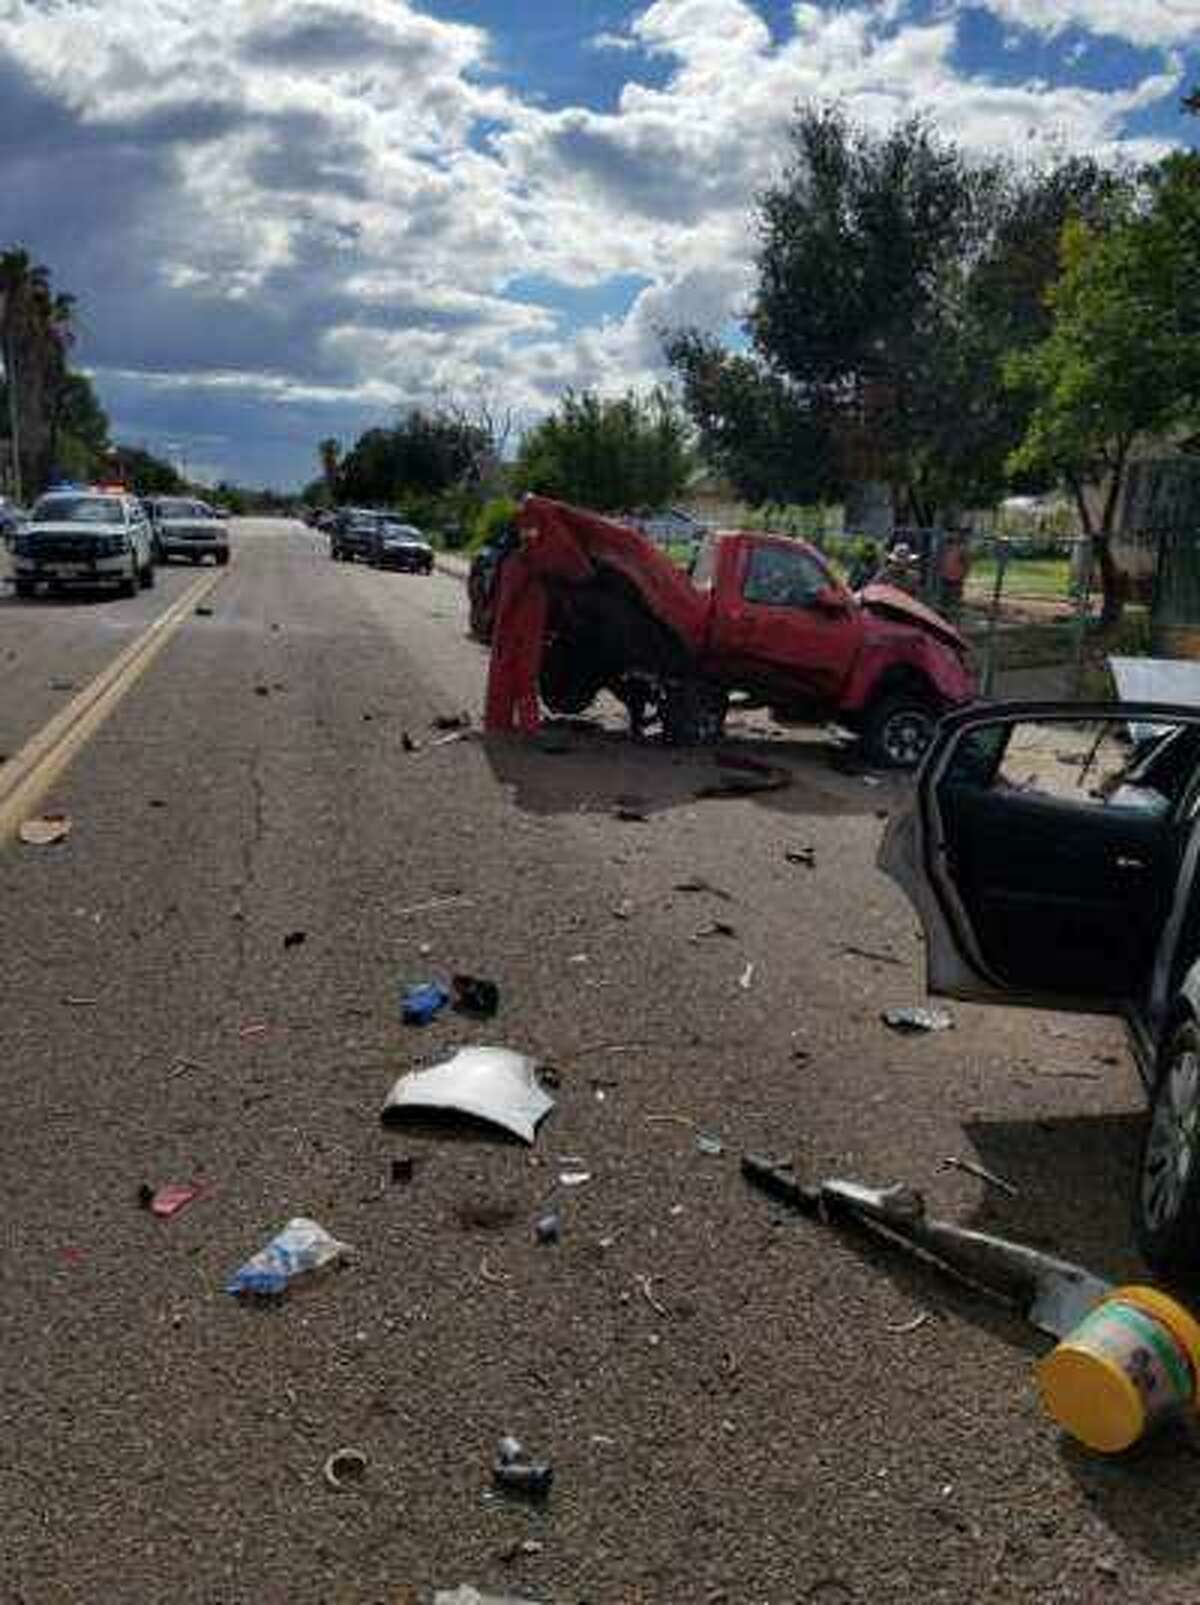 A crash was reported on Wednesday afternoon at the intersection of Prada Machin Drive and Burgos following an alleged human smuggling attempt.